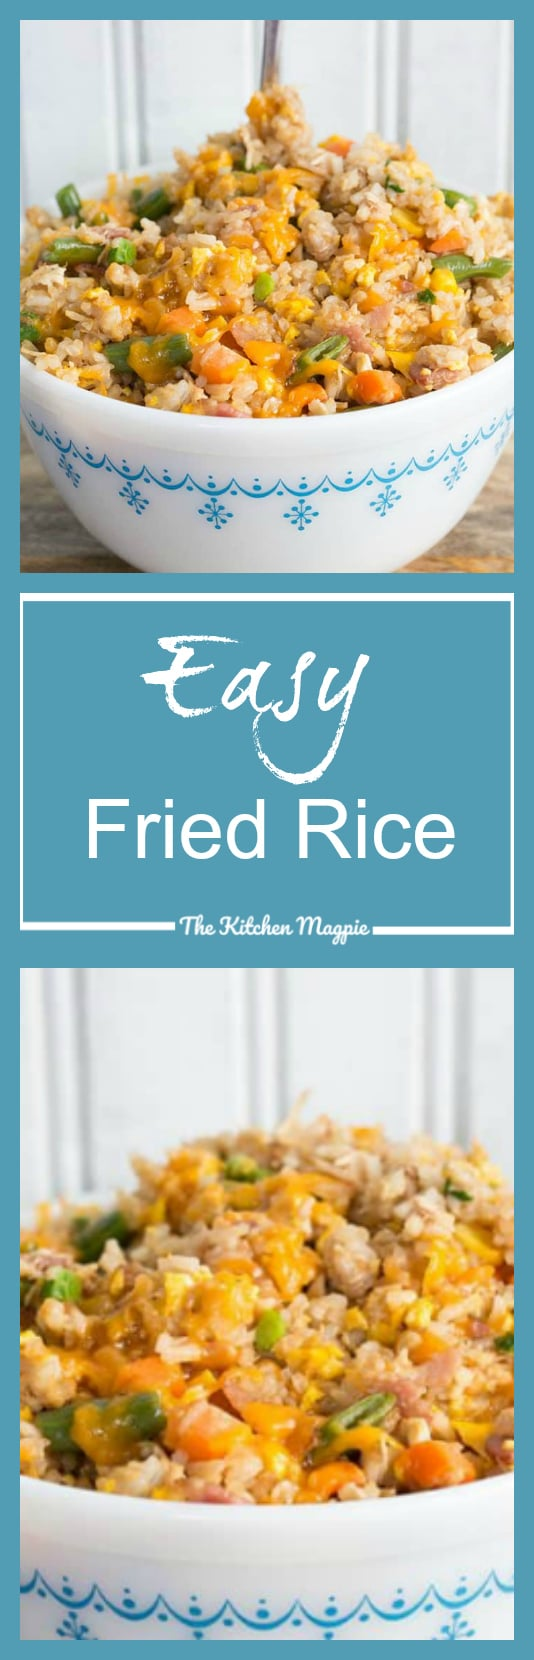 How to make easy fried rice recipe video the kitchen magpie how to make easy fried rice recipe video this homemade fried rice is the best recipe you will ever make at home ccuart Image collections